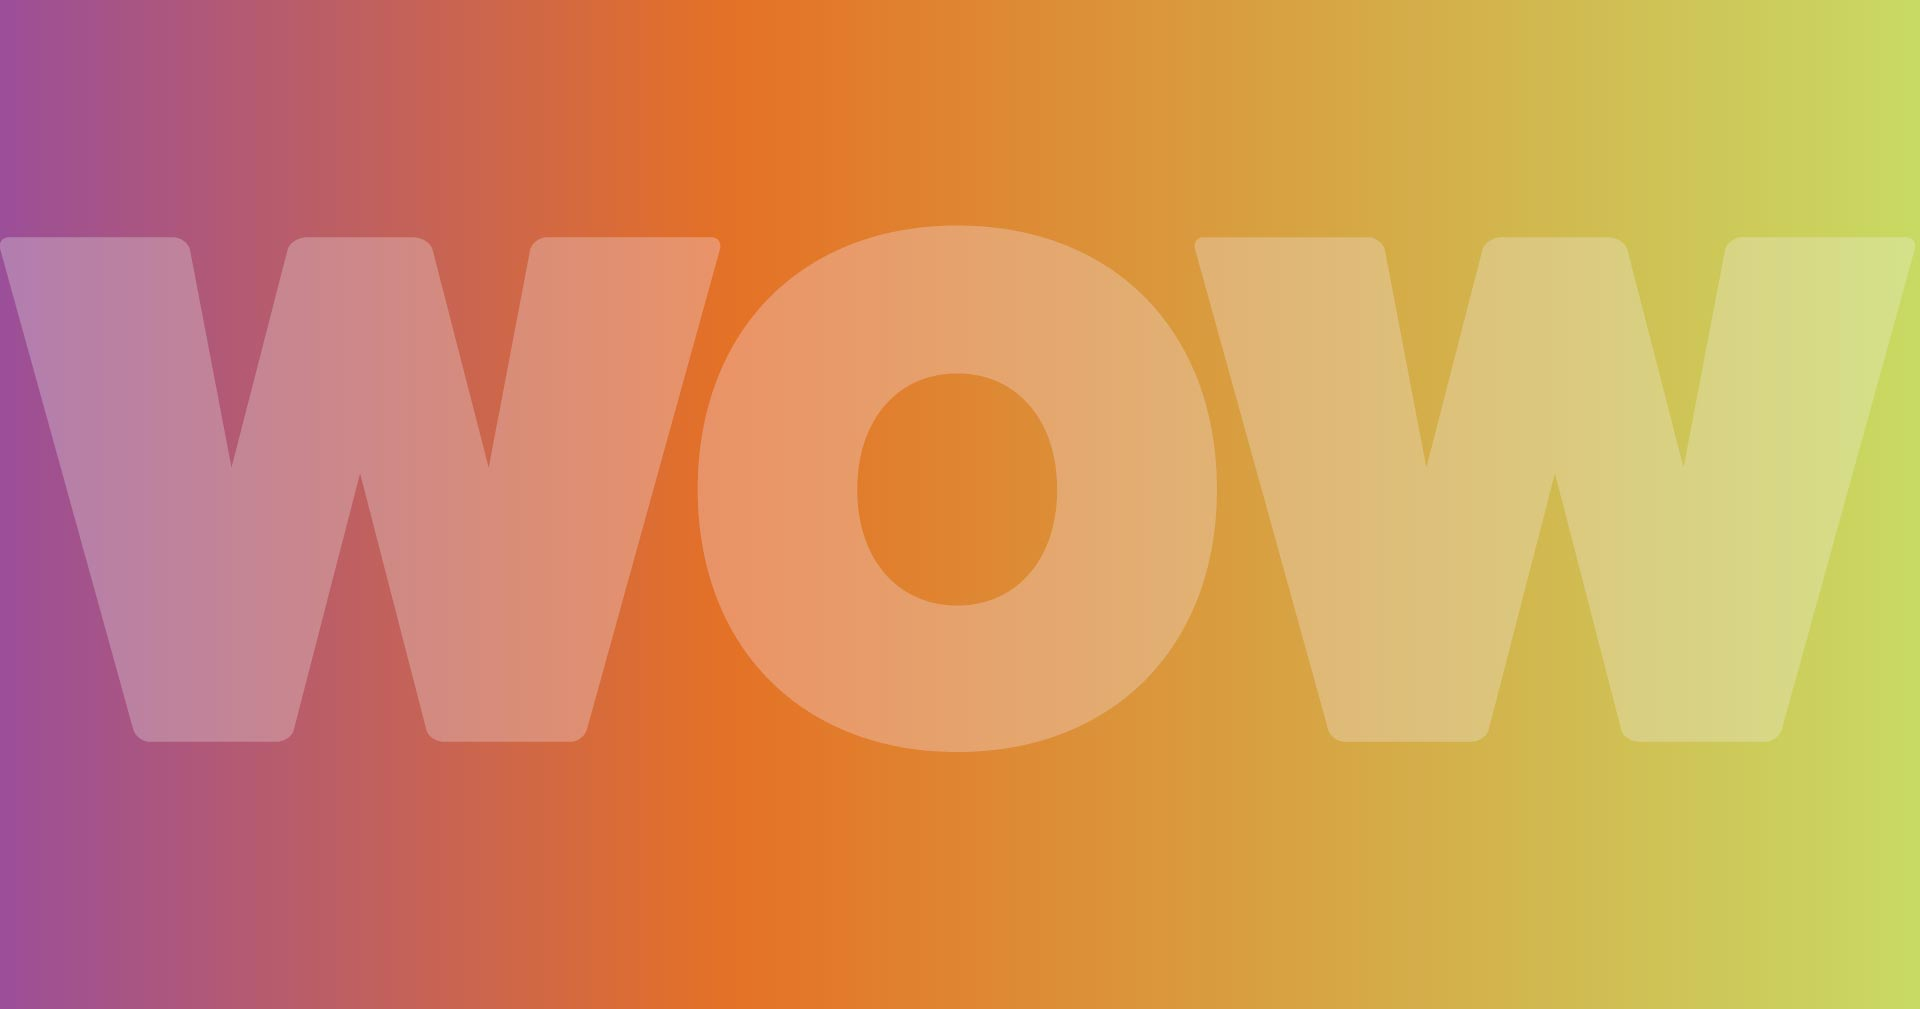 wow-gradient-background-lr